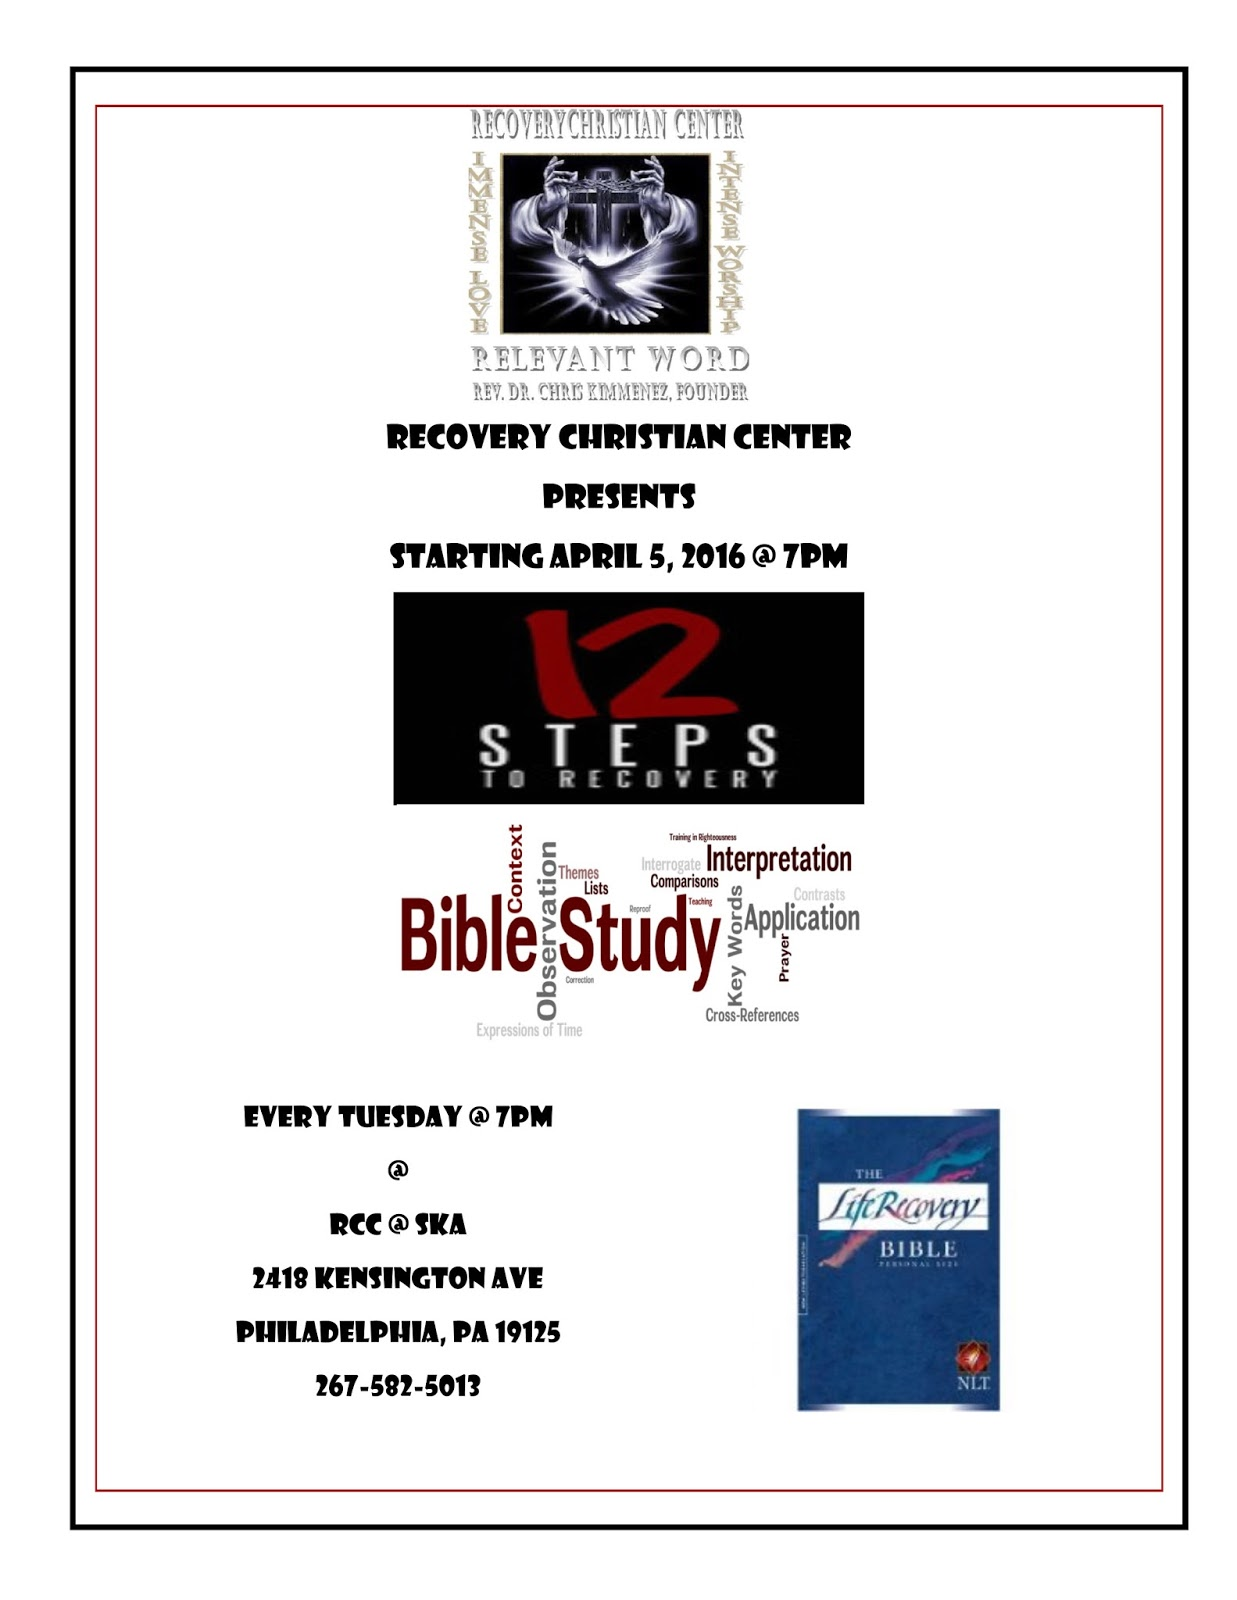 Recovery Christian Center Launching 12 Steps To Recovery